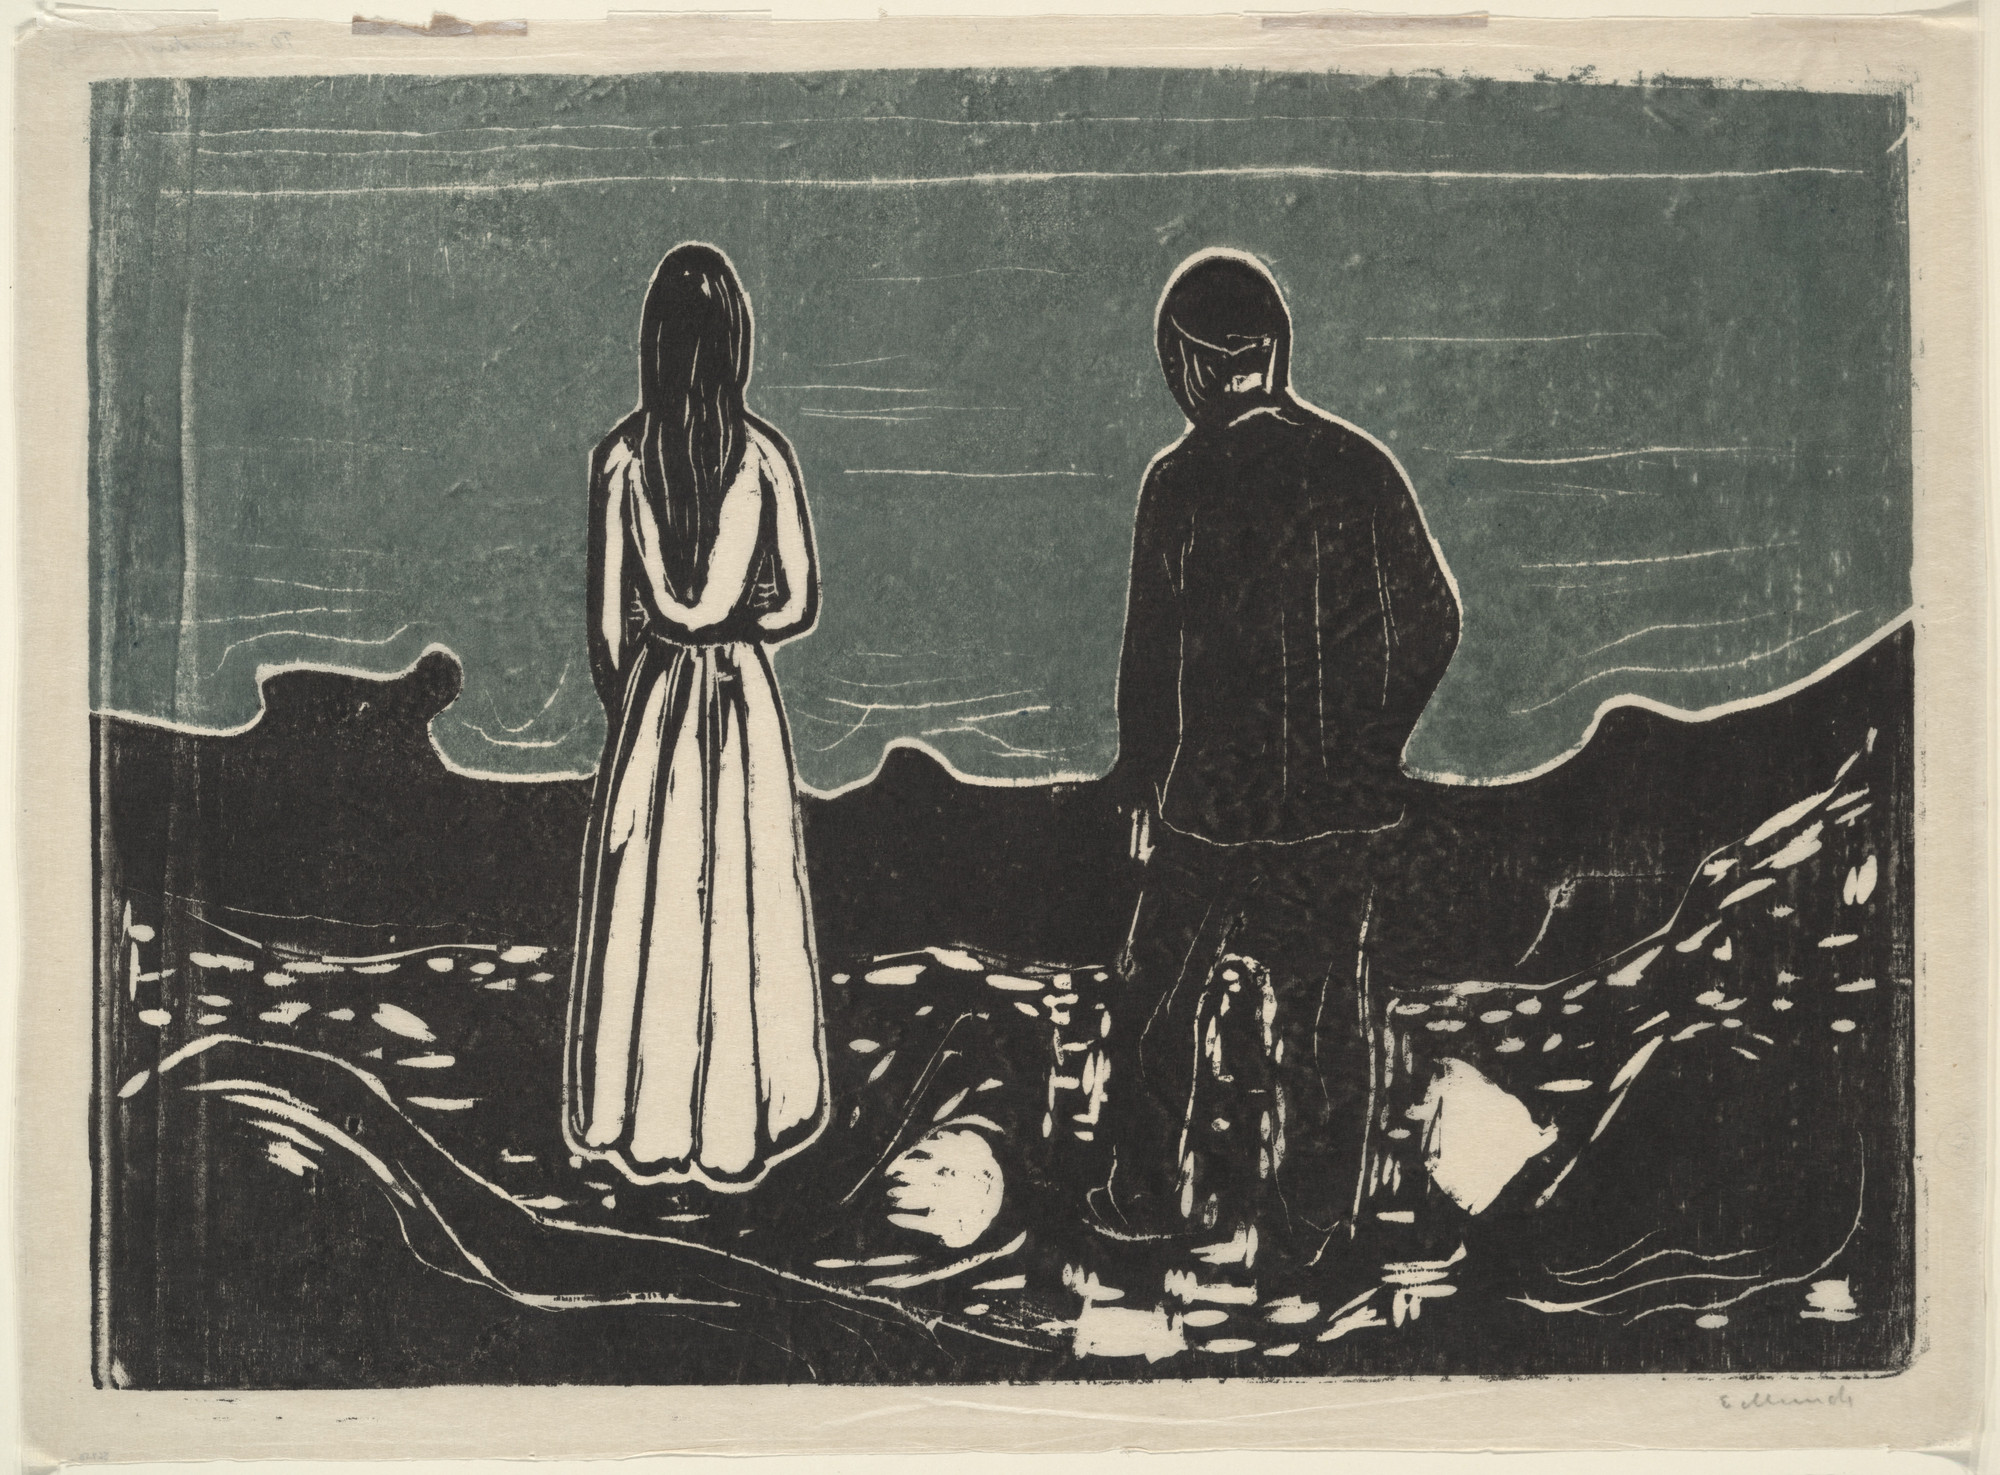 Edvard Munch. Two People. The Lonely Ones (To mennesker. De ensomme). 1899